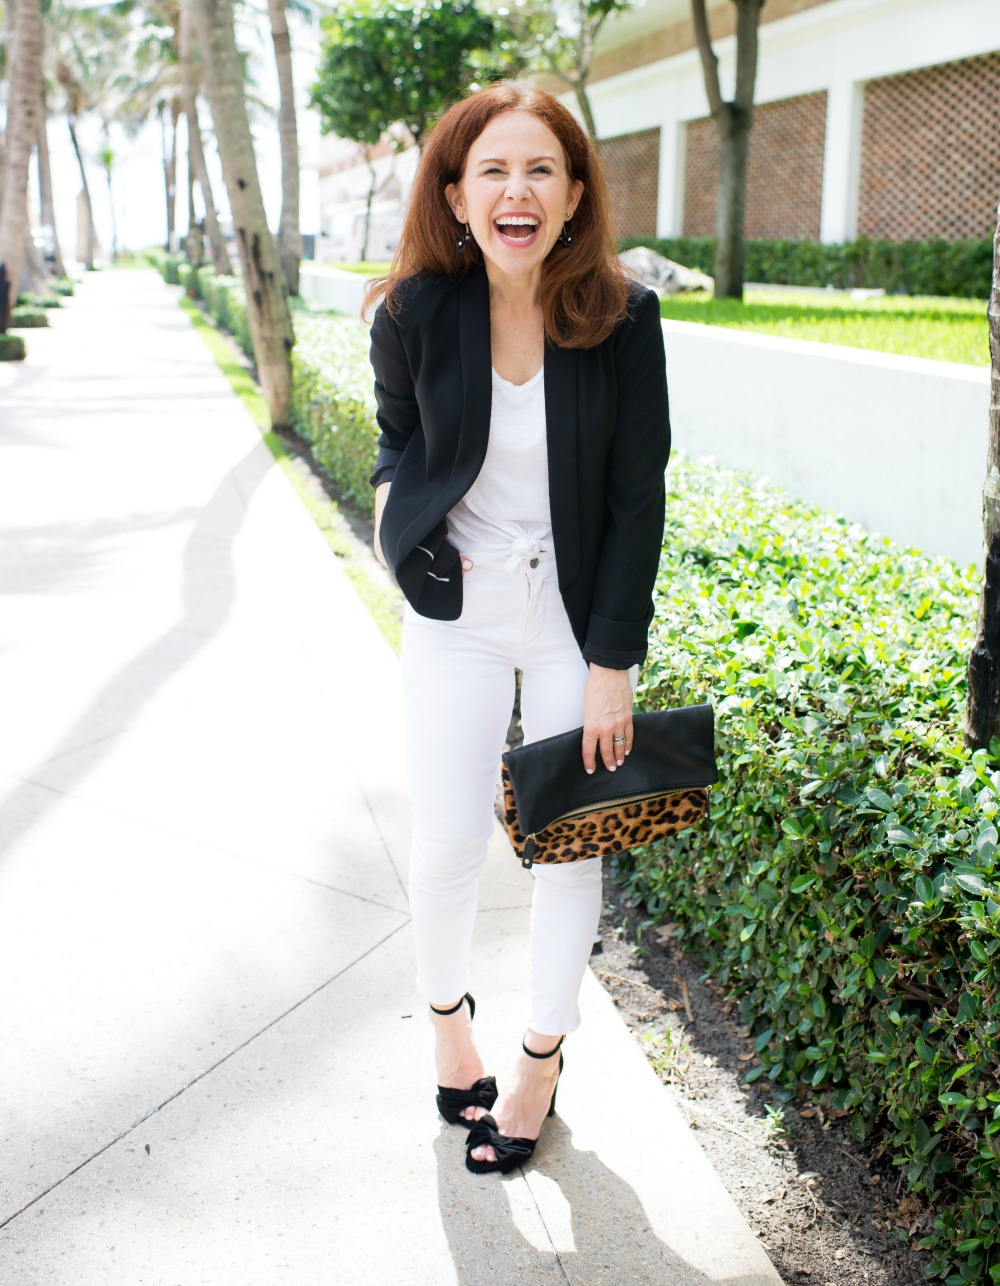 Five outfit ideas for a white tee and jeans | How to Wear White Jeans & White Tee - outfit ideas featured by popular Florida style blogger, The Modern Savvy